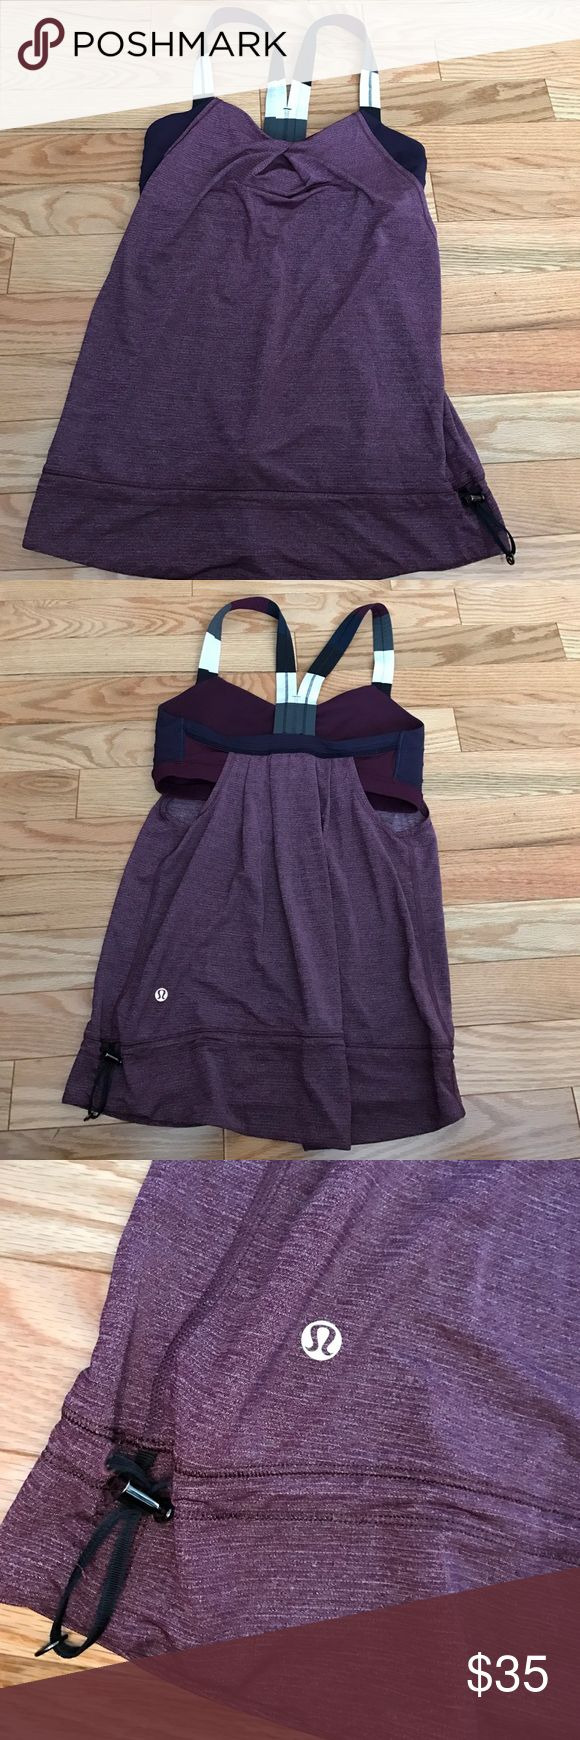 Lululemon tank Worn twice in excellent condition. Super cute, popular color combo with built in  ...